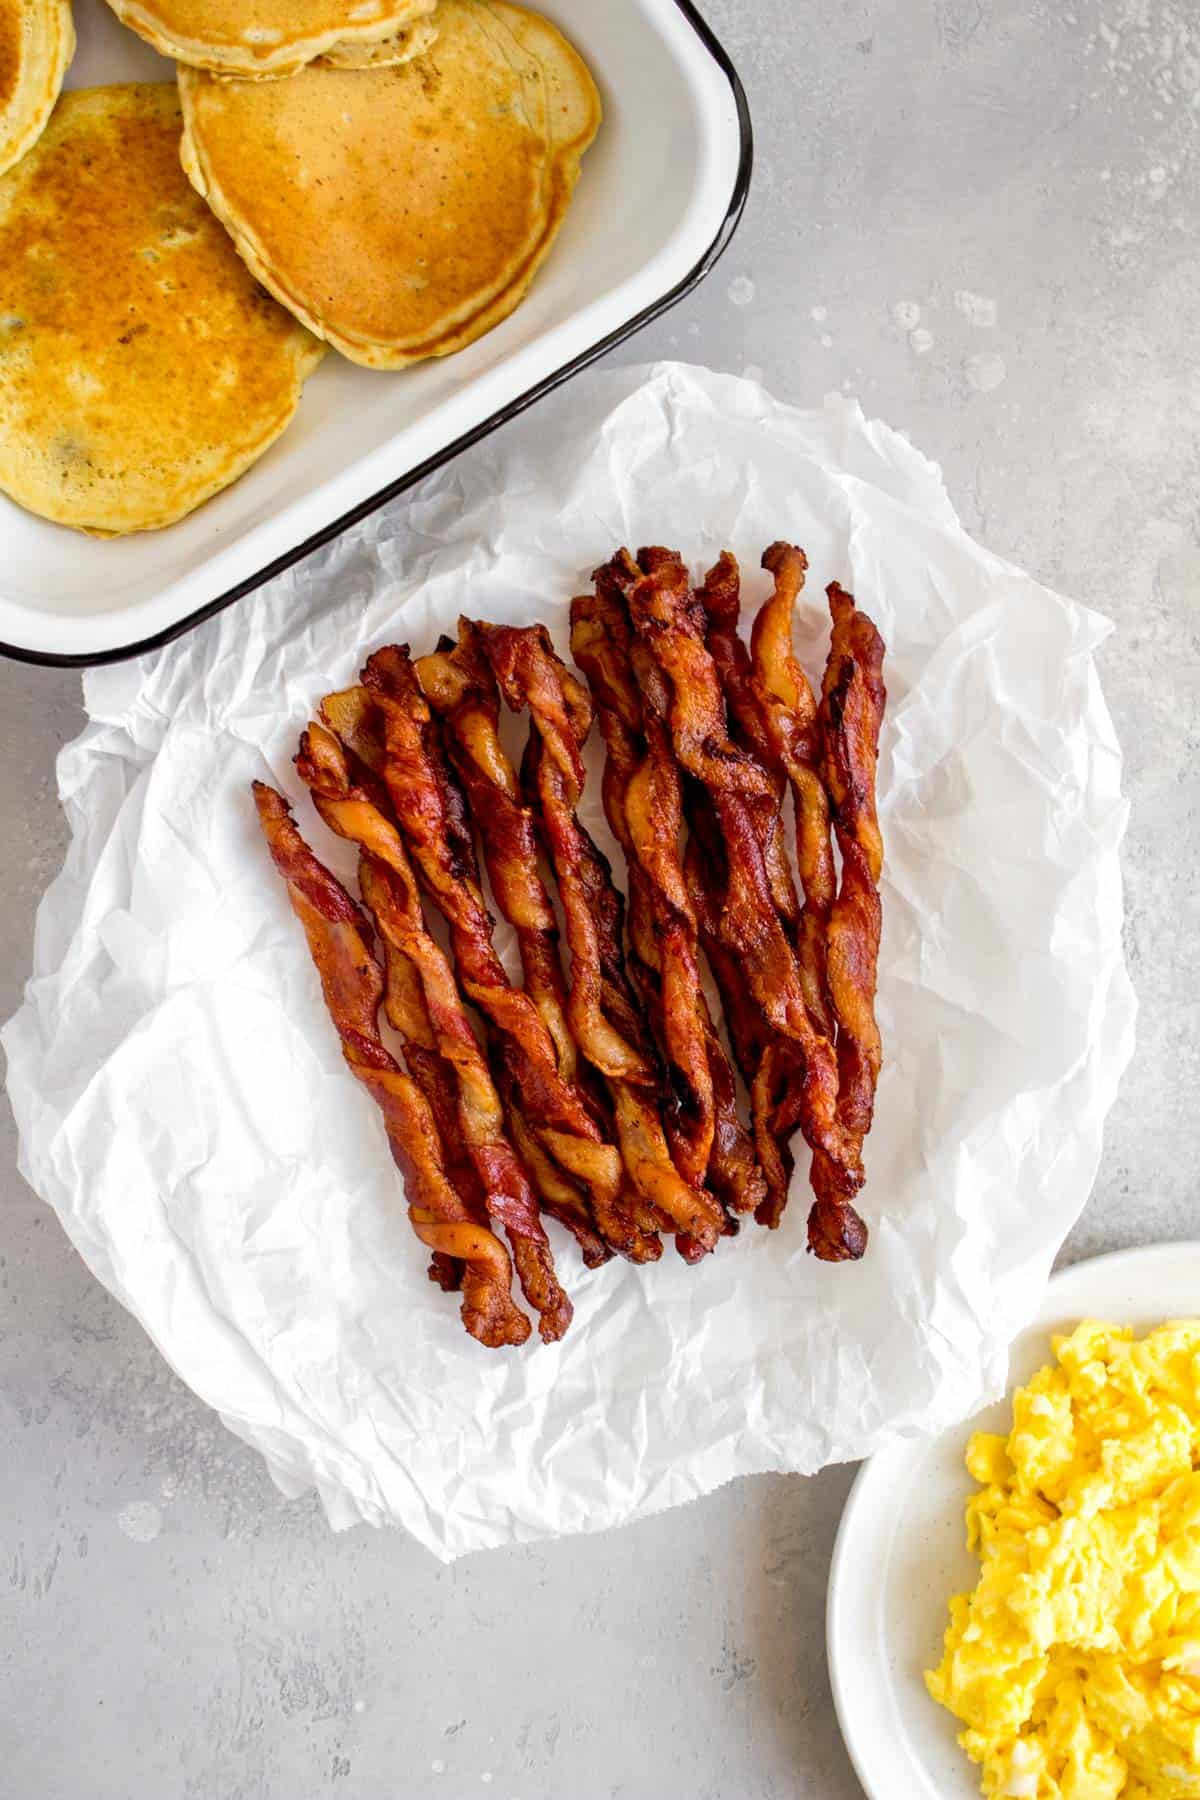 Overhead view of a platter of twisted bacon beside some pancakes and eggs.